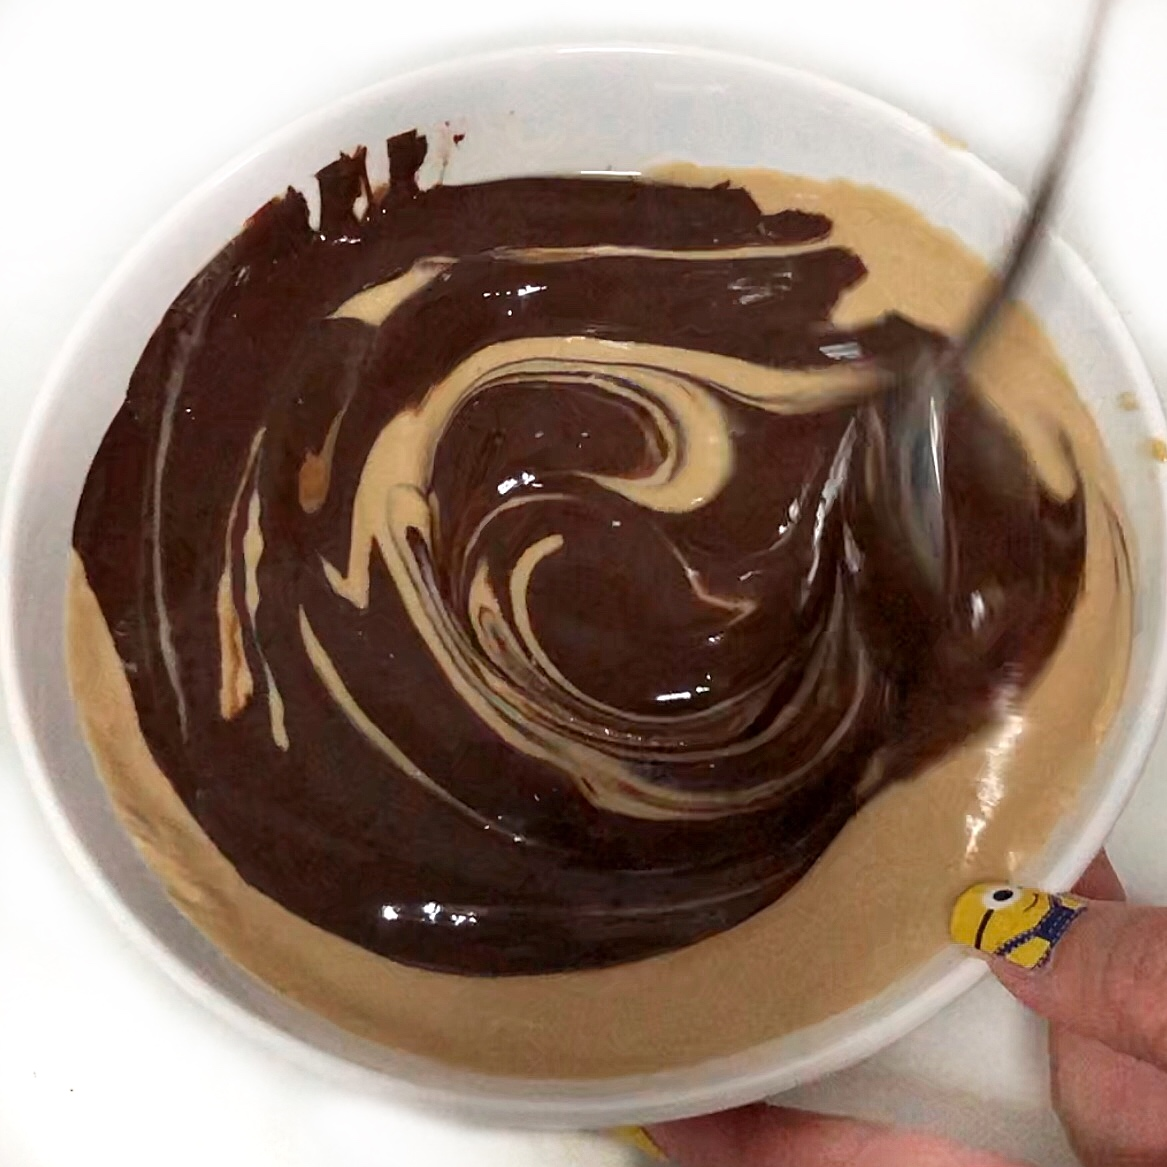 Mixing the chocolate